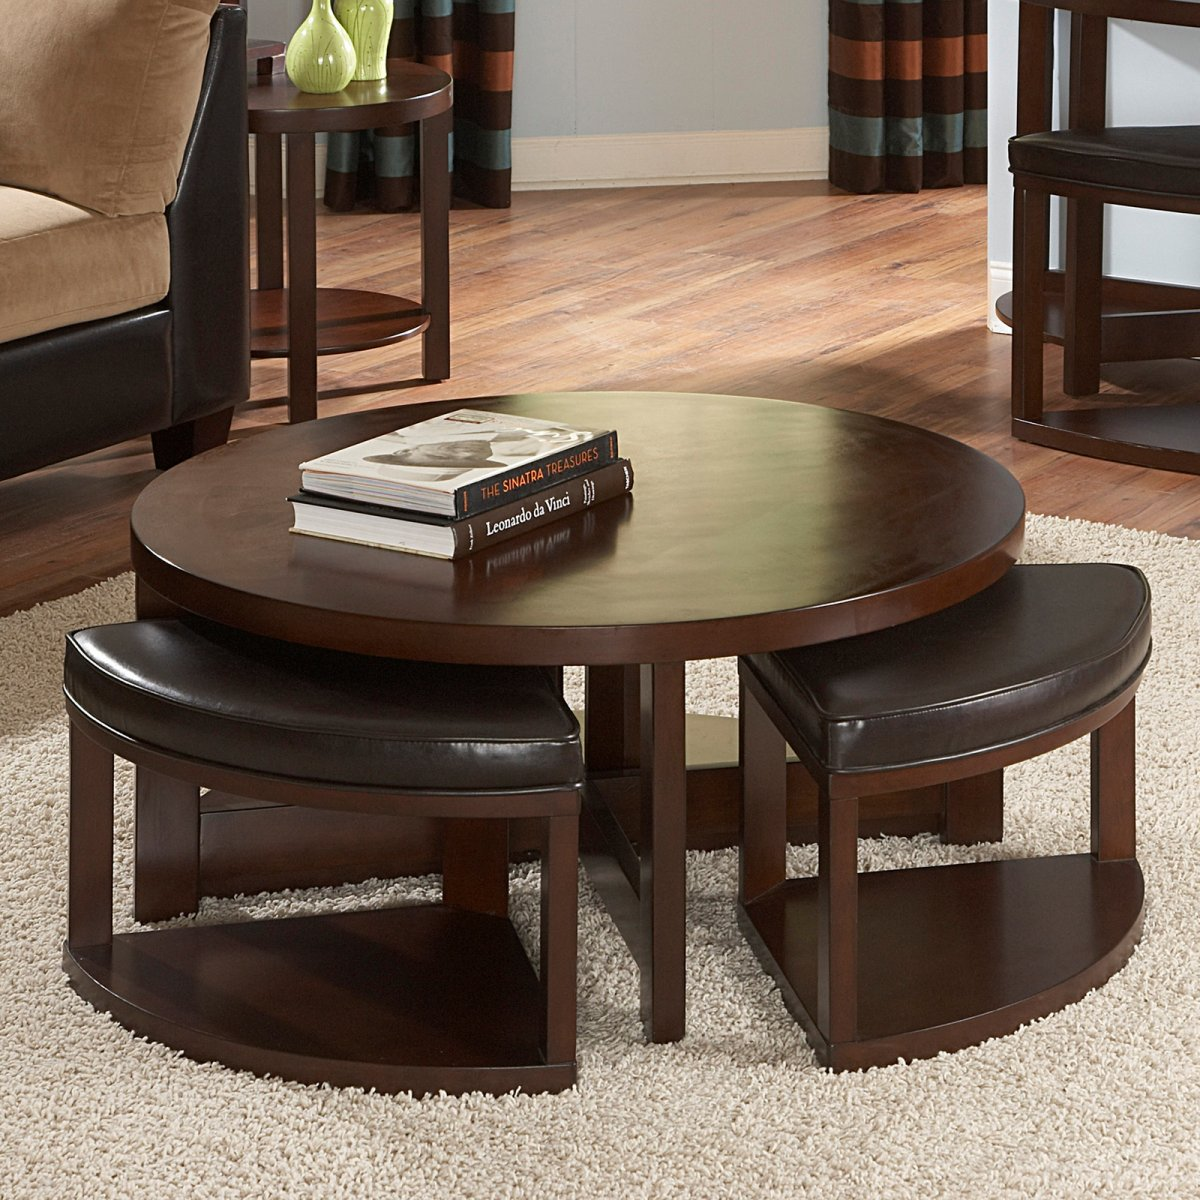 Round Storage Ottoman | Coffee Table with Ottomans | Wayfair Storage